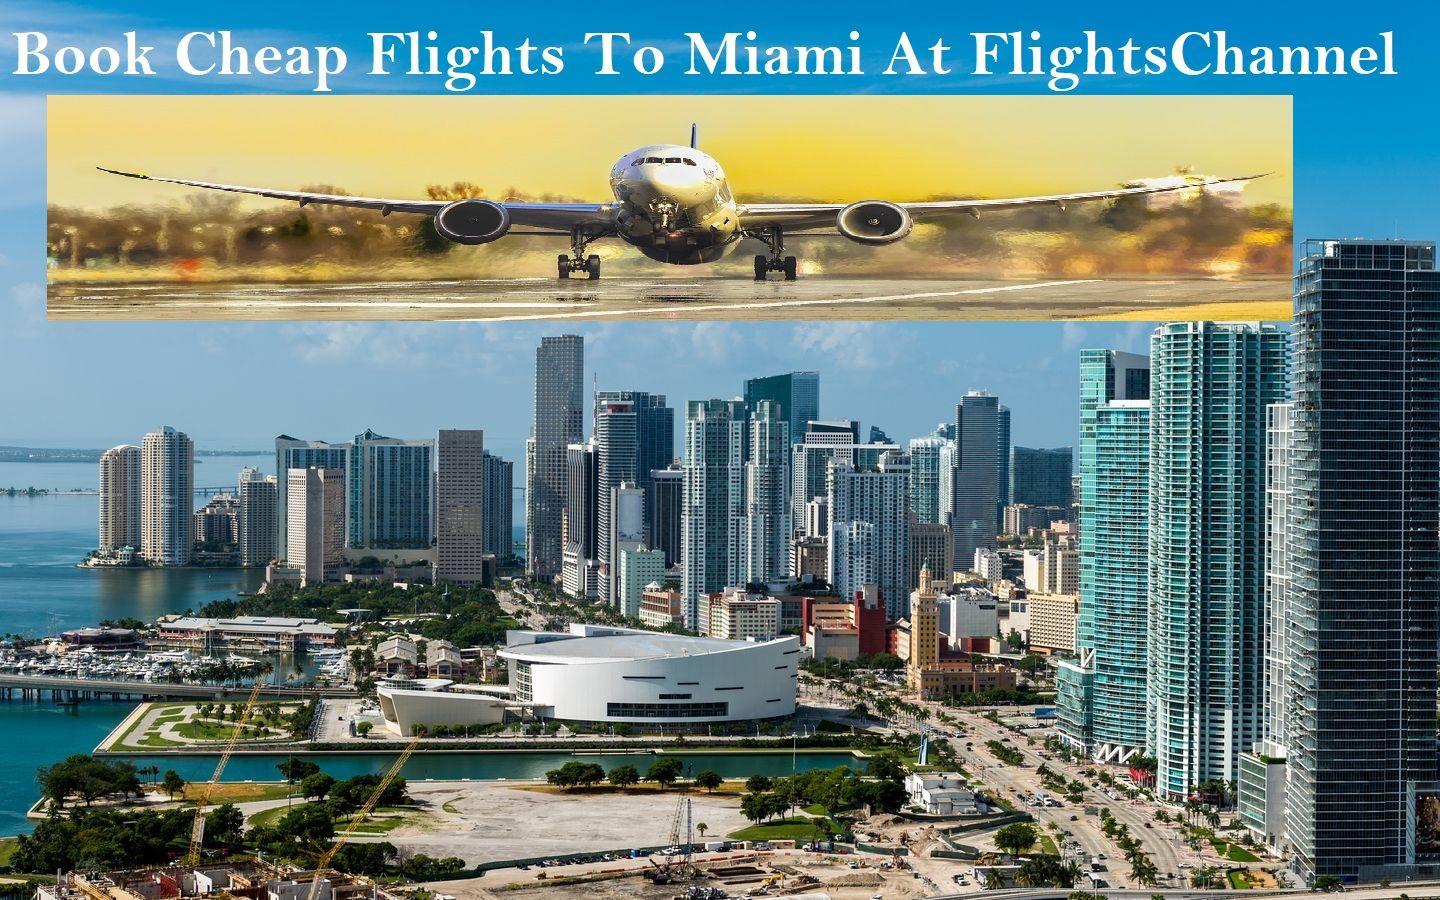 Fly in Style On Flight Tickets to Miami for Its Wonderful Beach